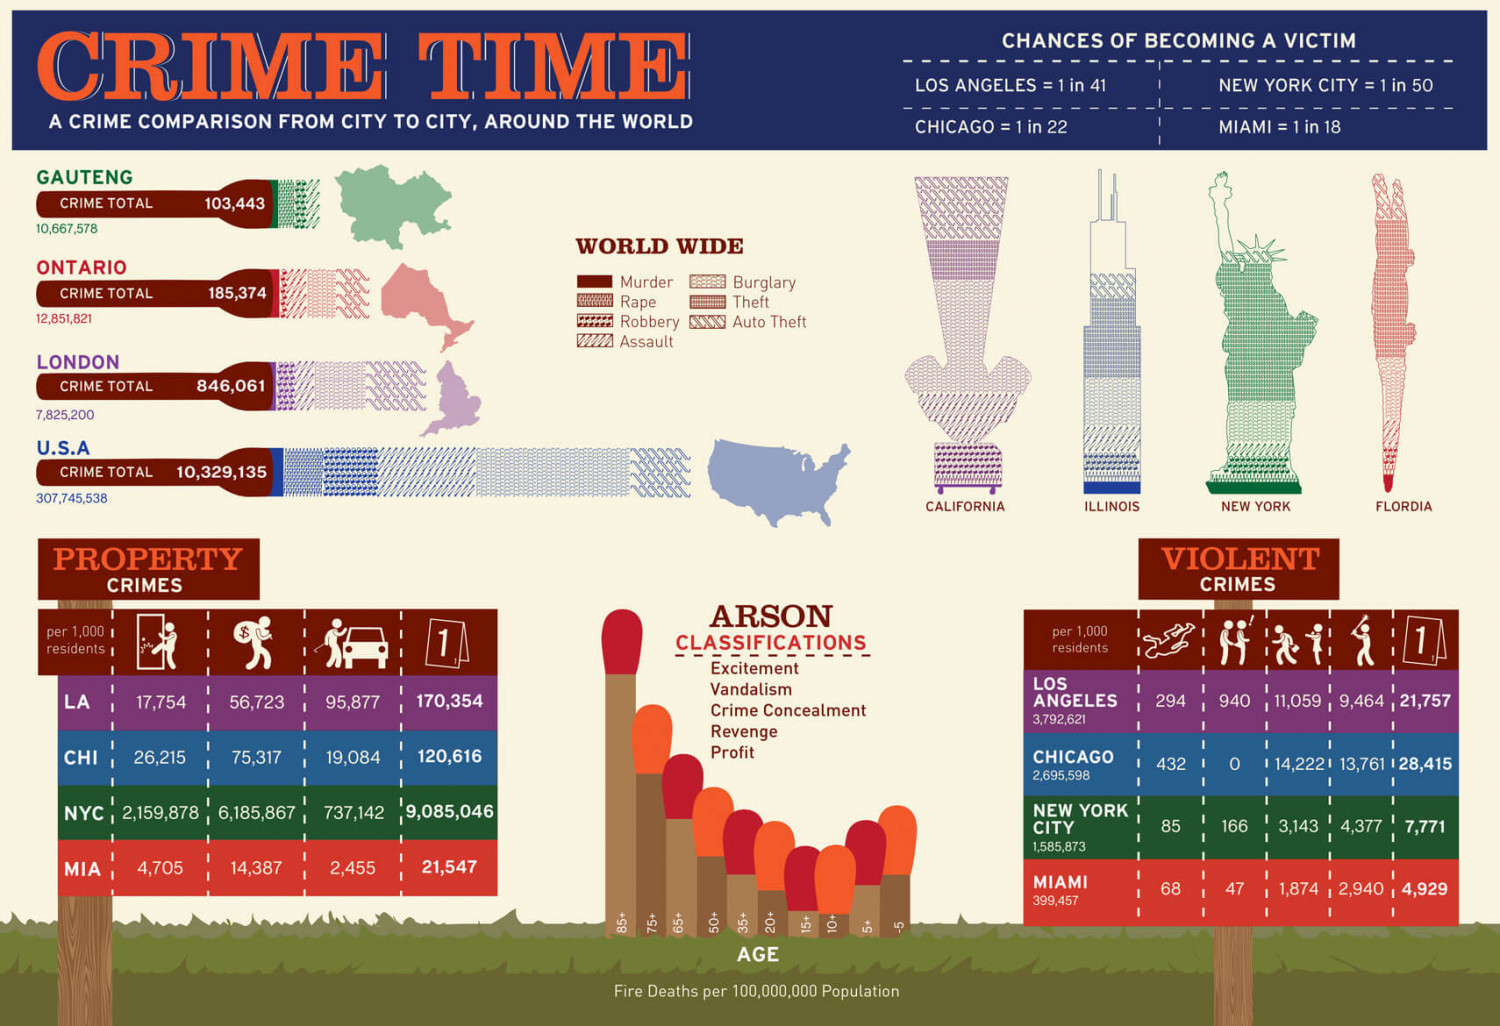 Crime Time Infographic